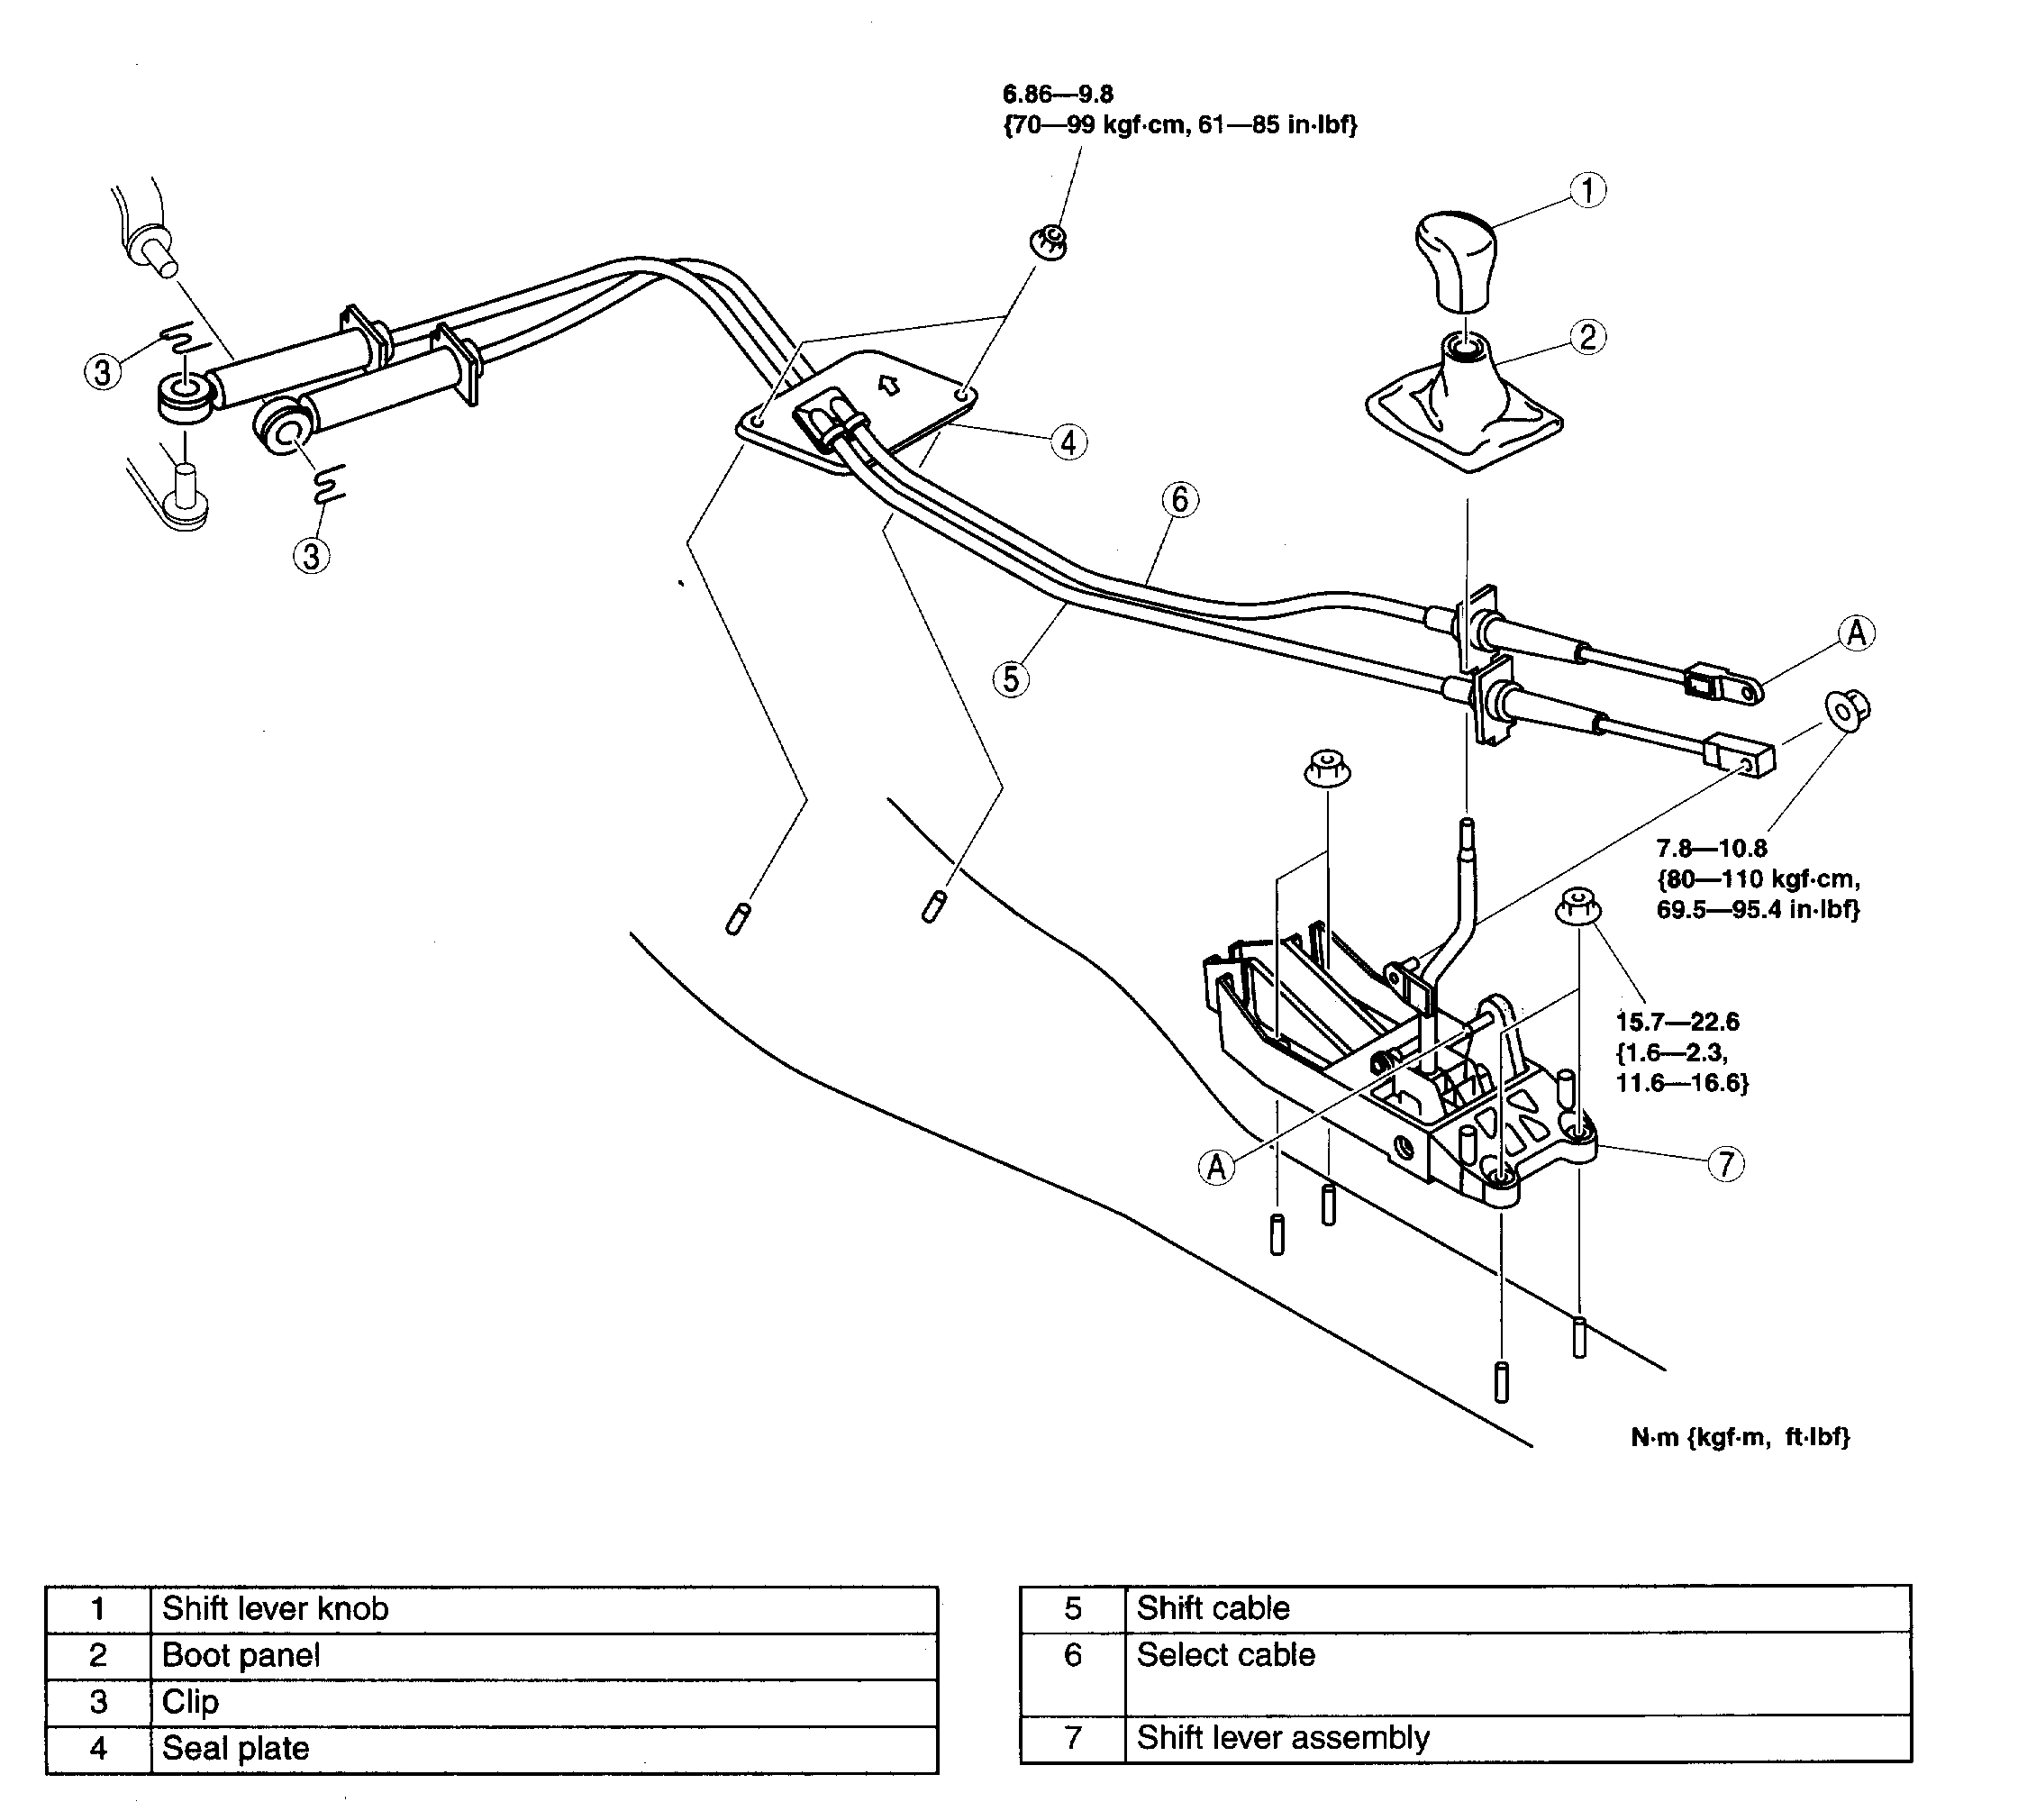 Automatic Transmission Diagram How An Automatic Transmission Works